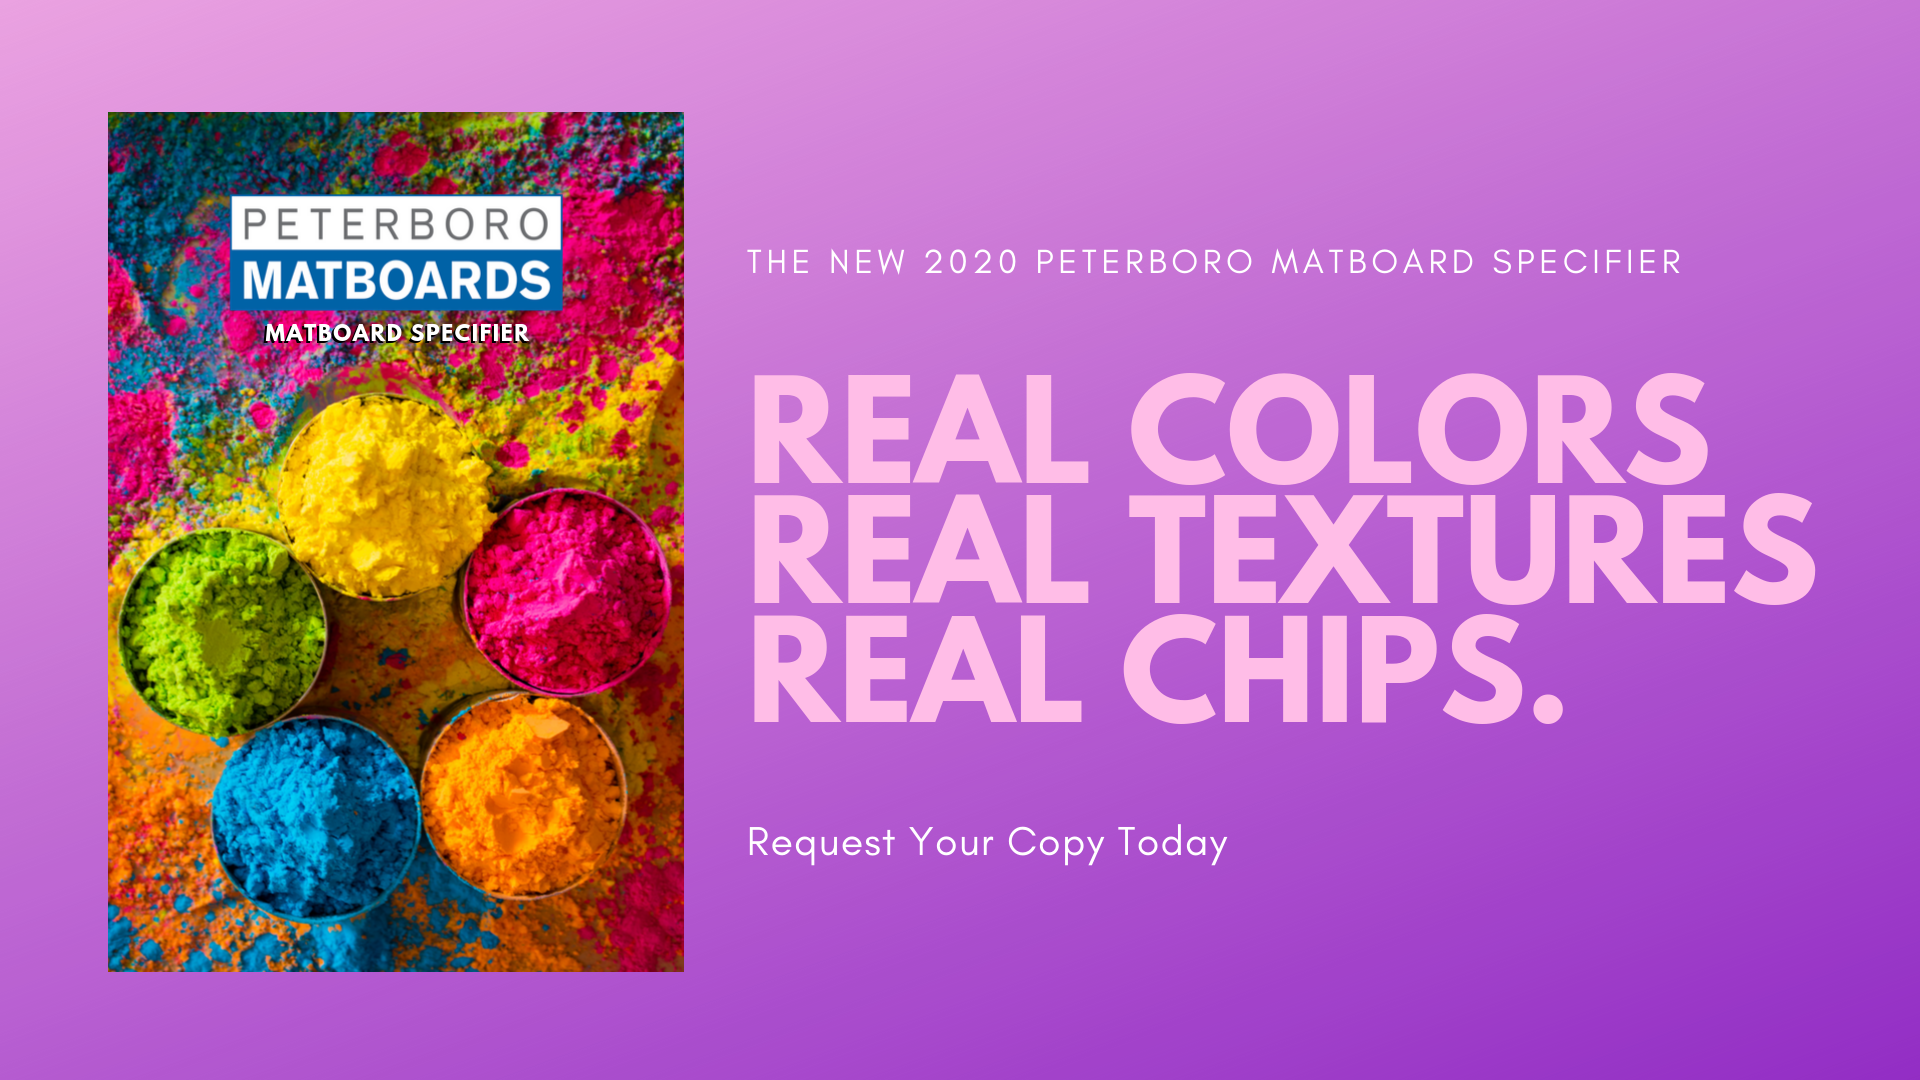 The New 2020 Peterboro Matboard Specifier - Real Colors, Real Textures, Real Chips